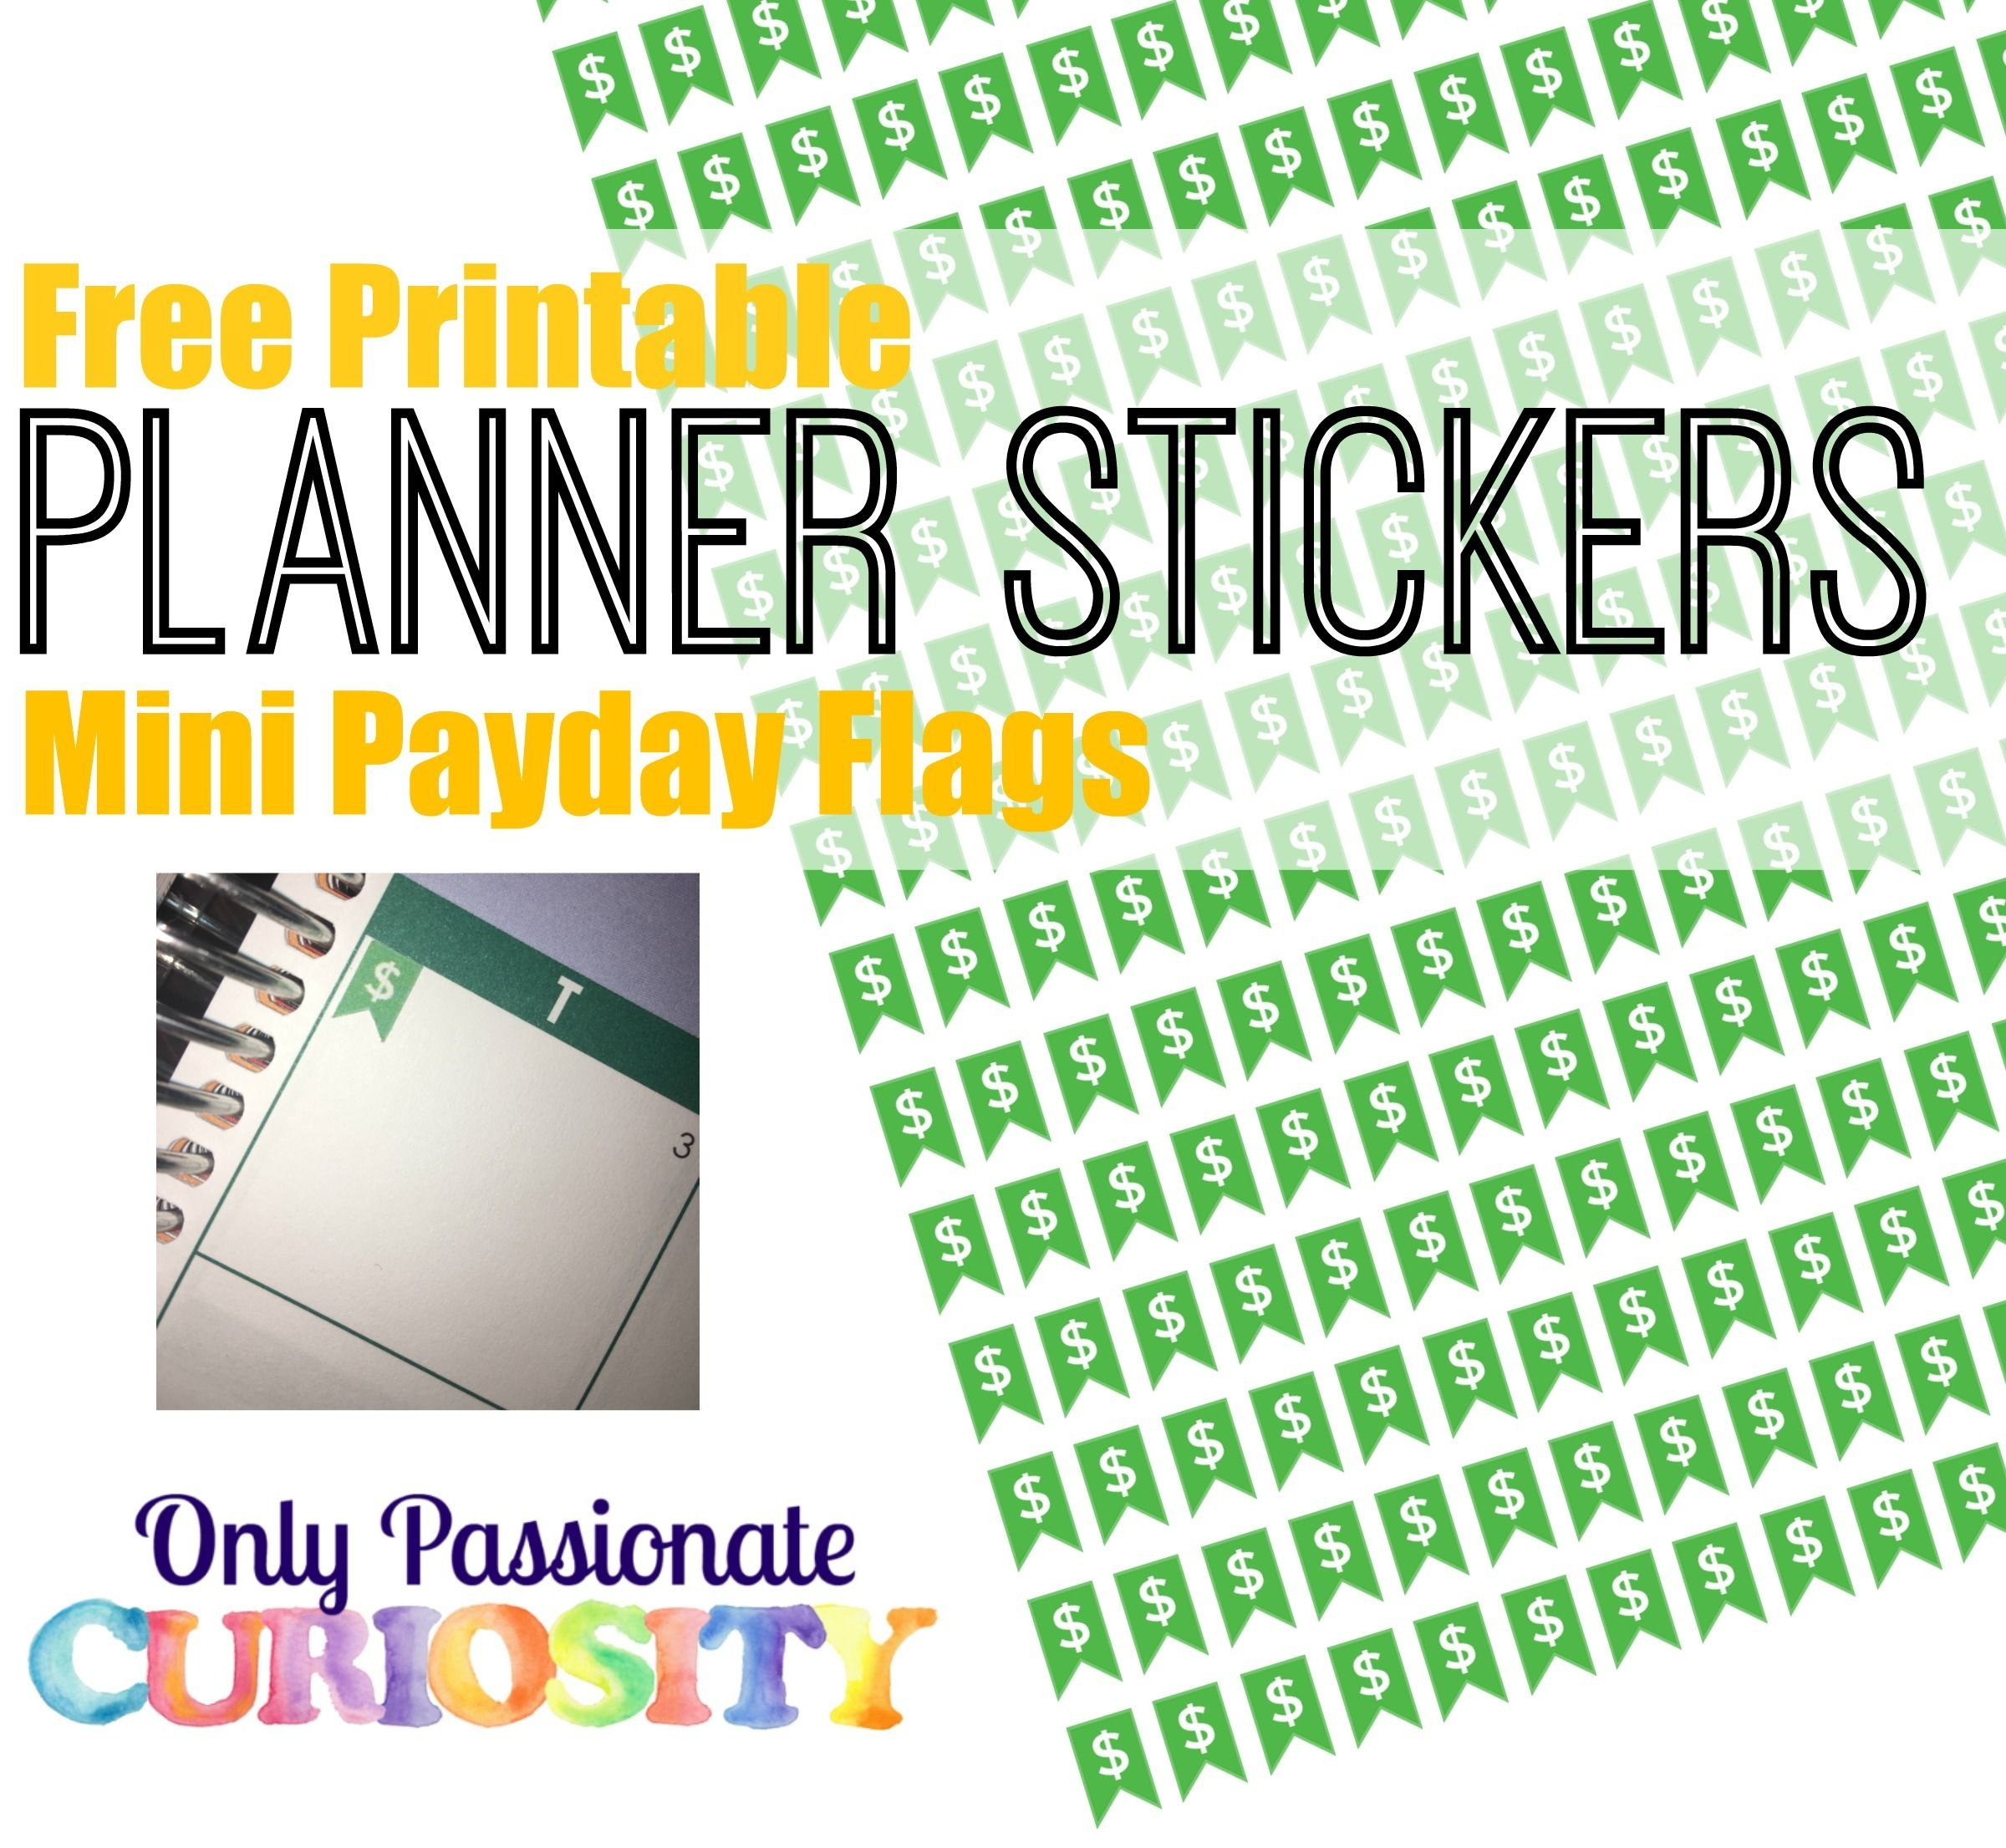 Printable Payday Flag Planner Stickers | Free Planner Stickers | How - Free Printable Keyboard Stickers